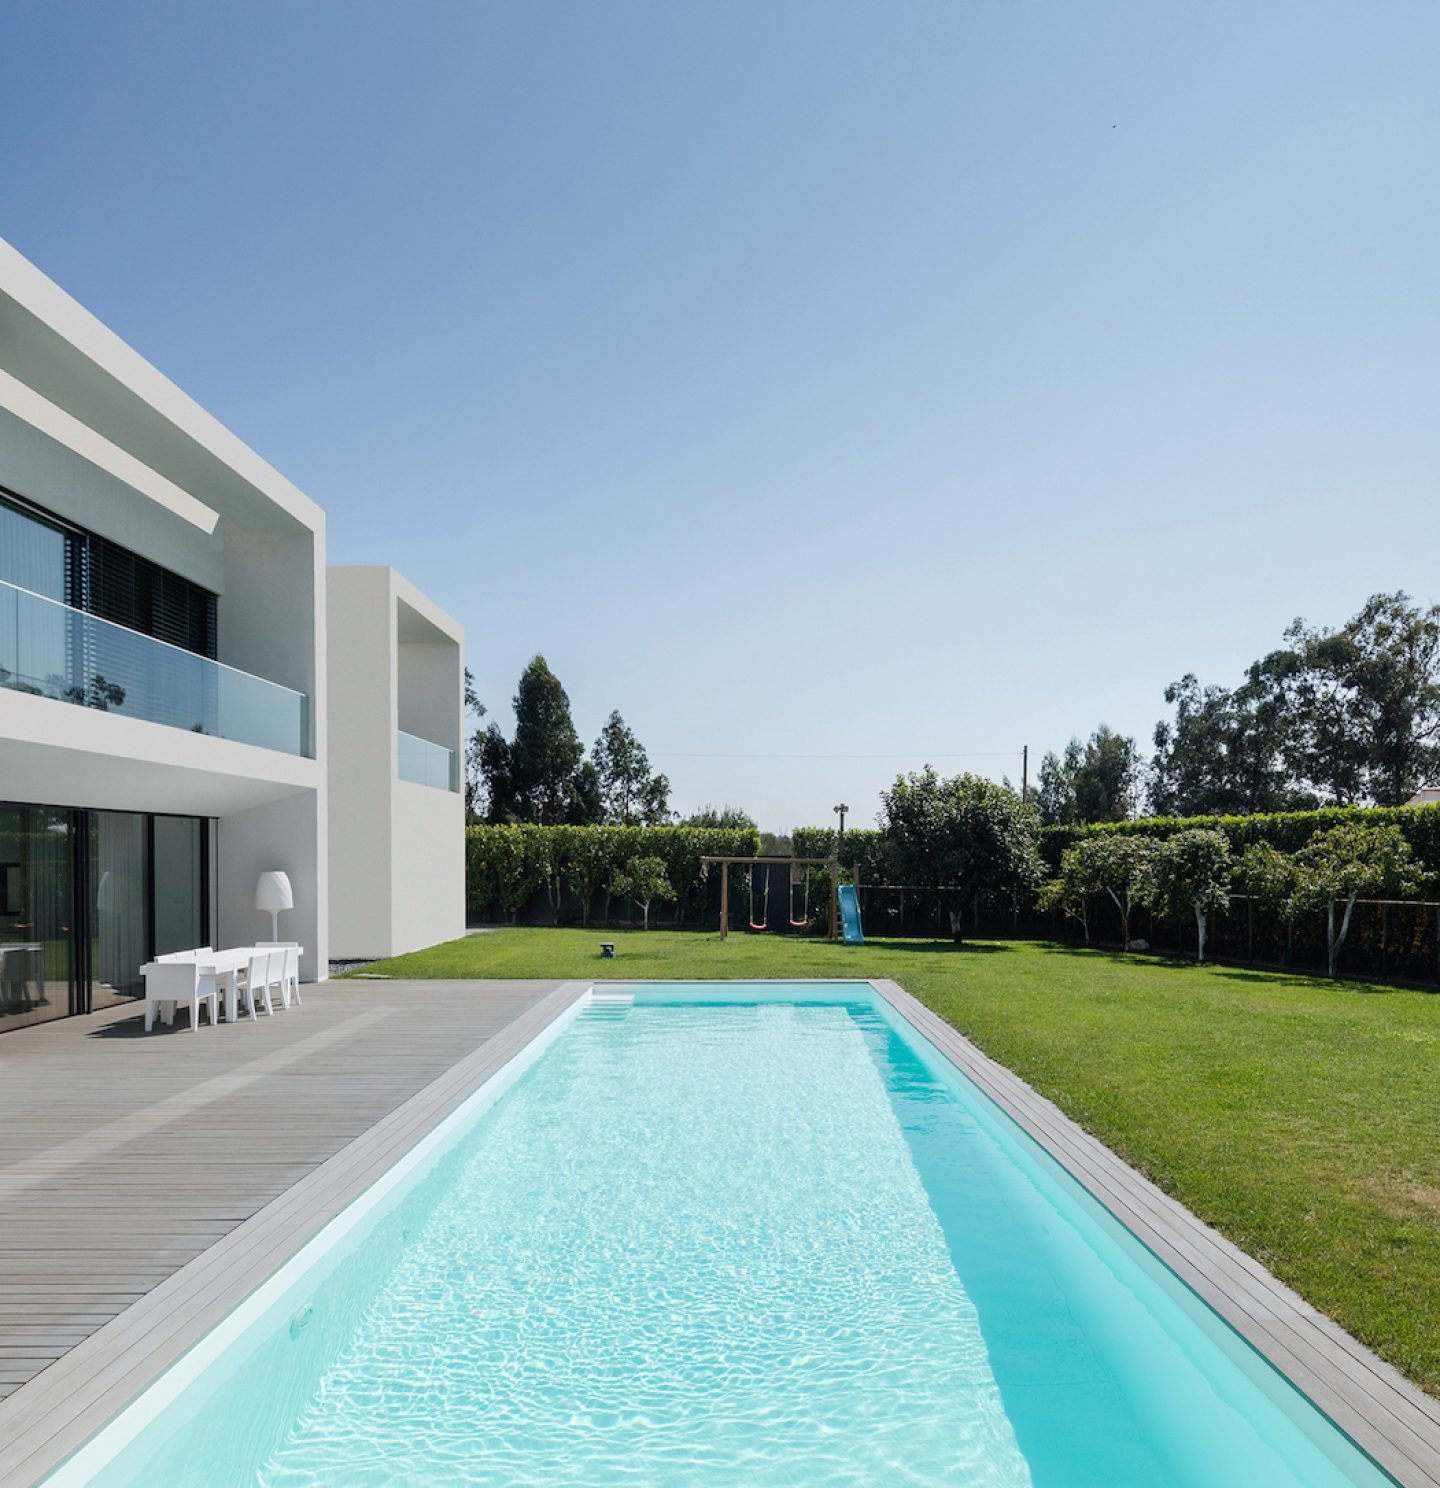 Vila do Conde House - Raulino Arquitecto (07)